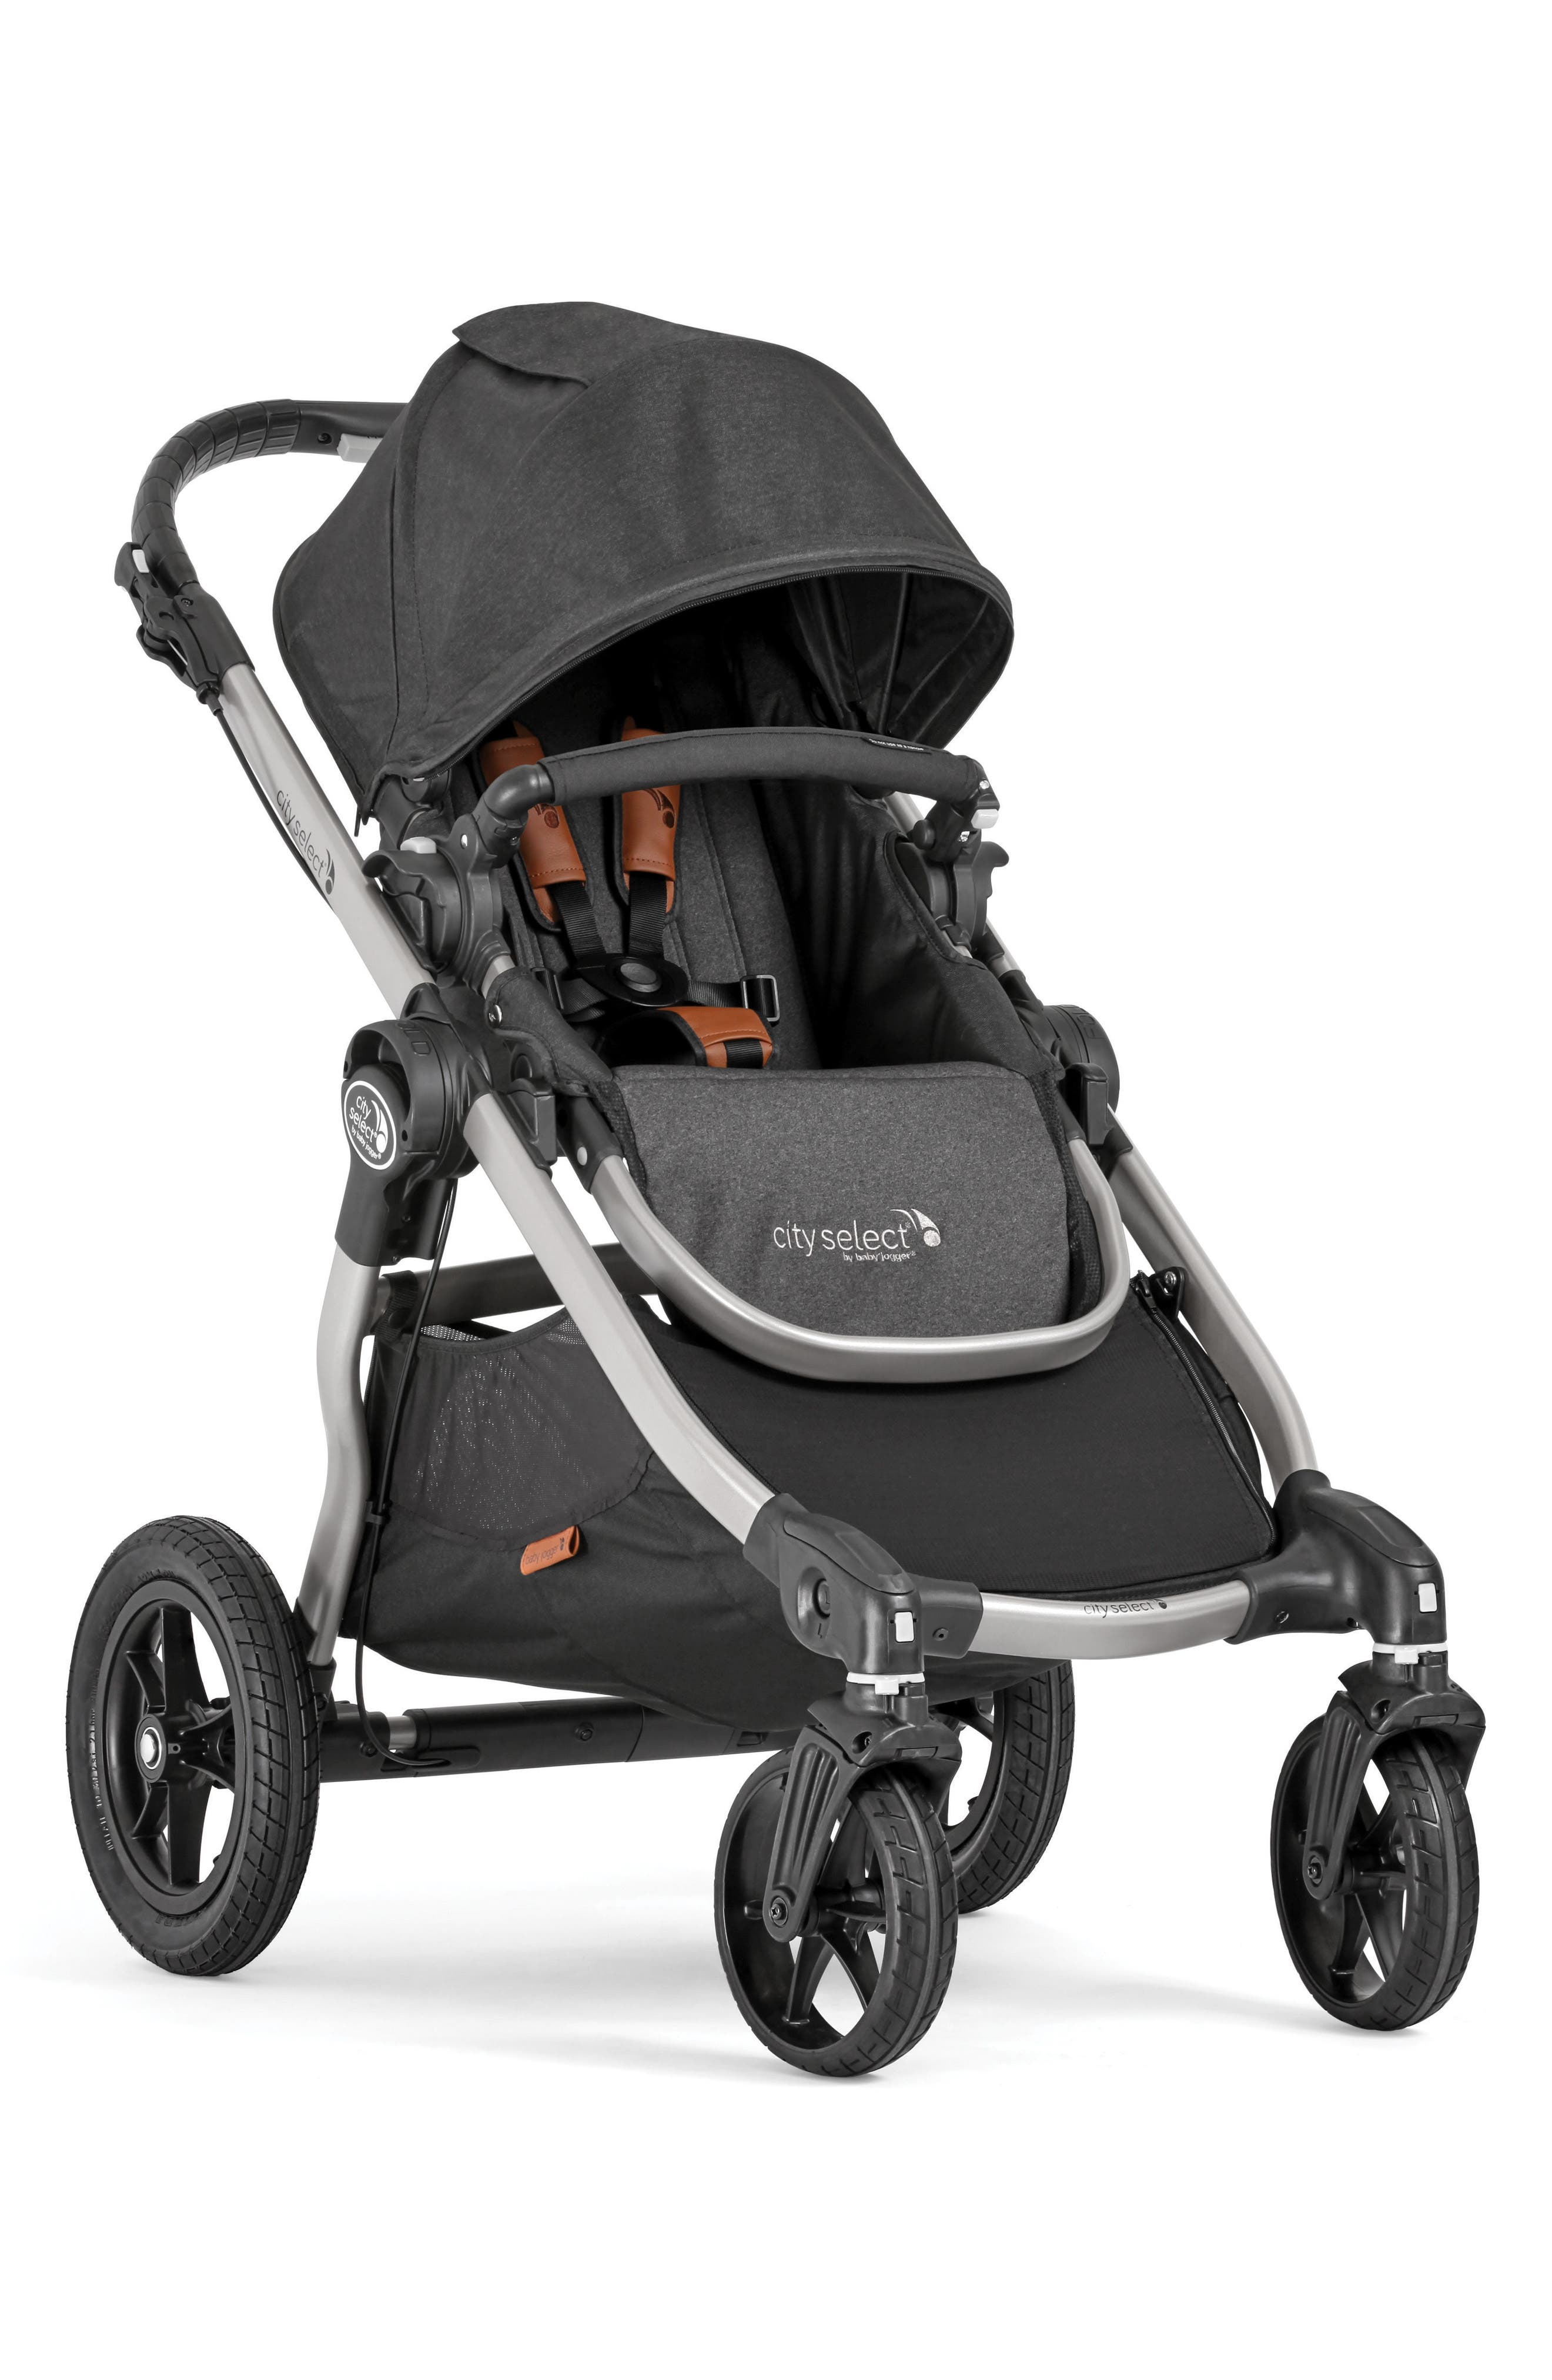 City Select<sup>®</sup> 2018 Special Edition 10-Year Anniversary Stroller,                             Main thumbnail 1, color,                             020